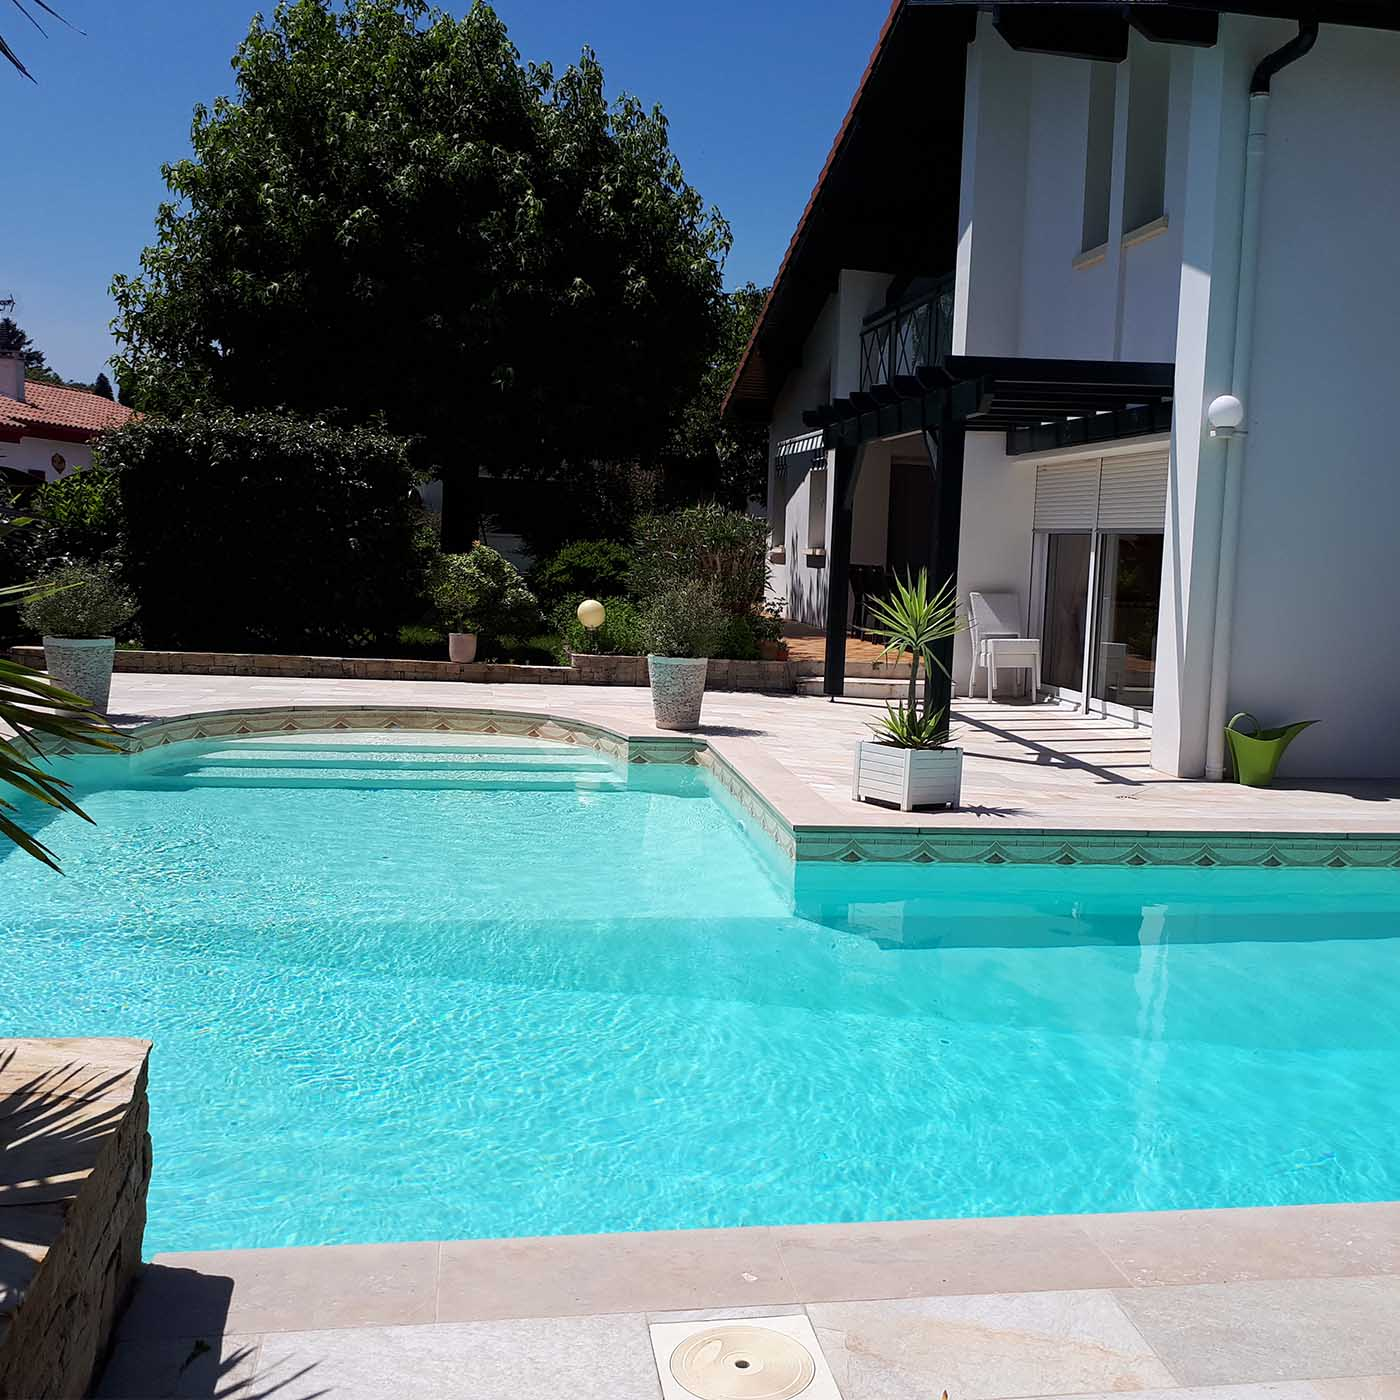 dallage piscine cenia beige pierre naturelle